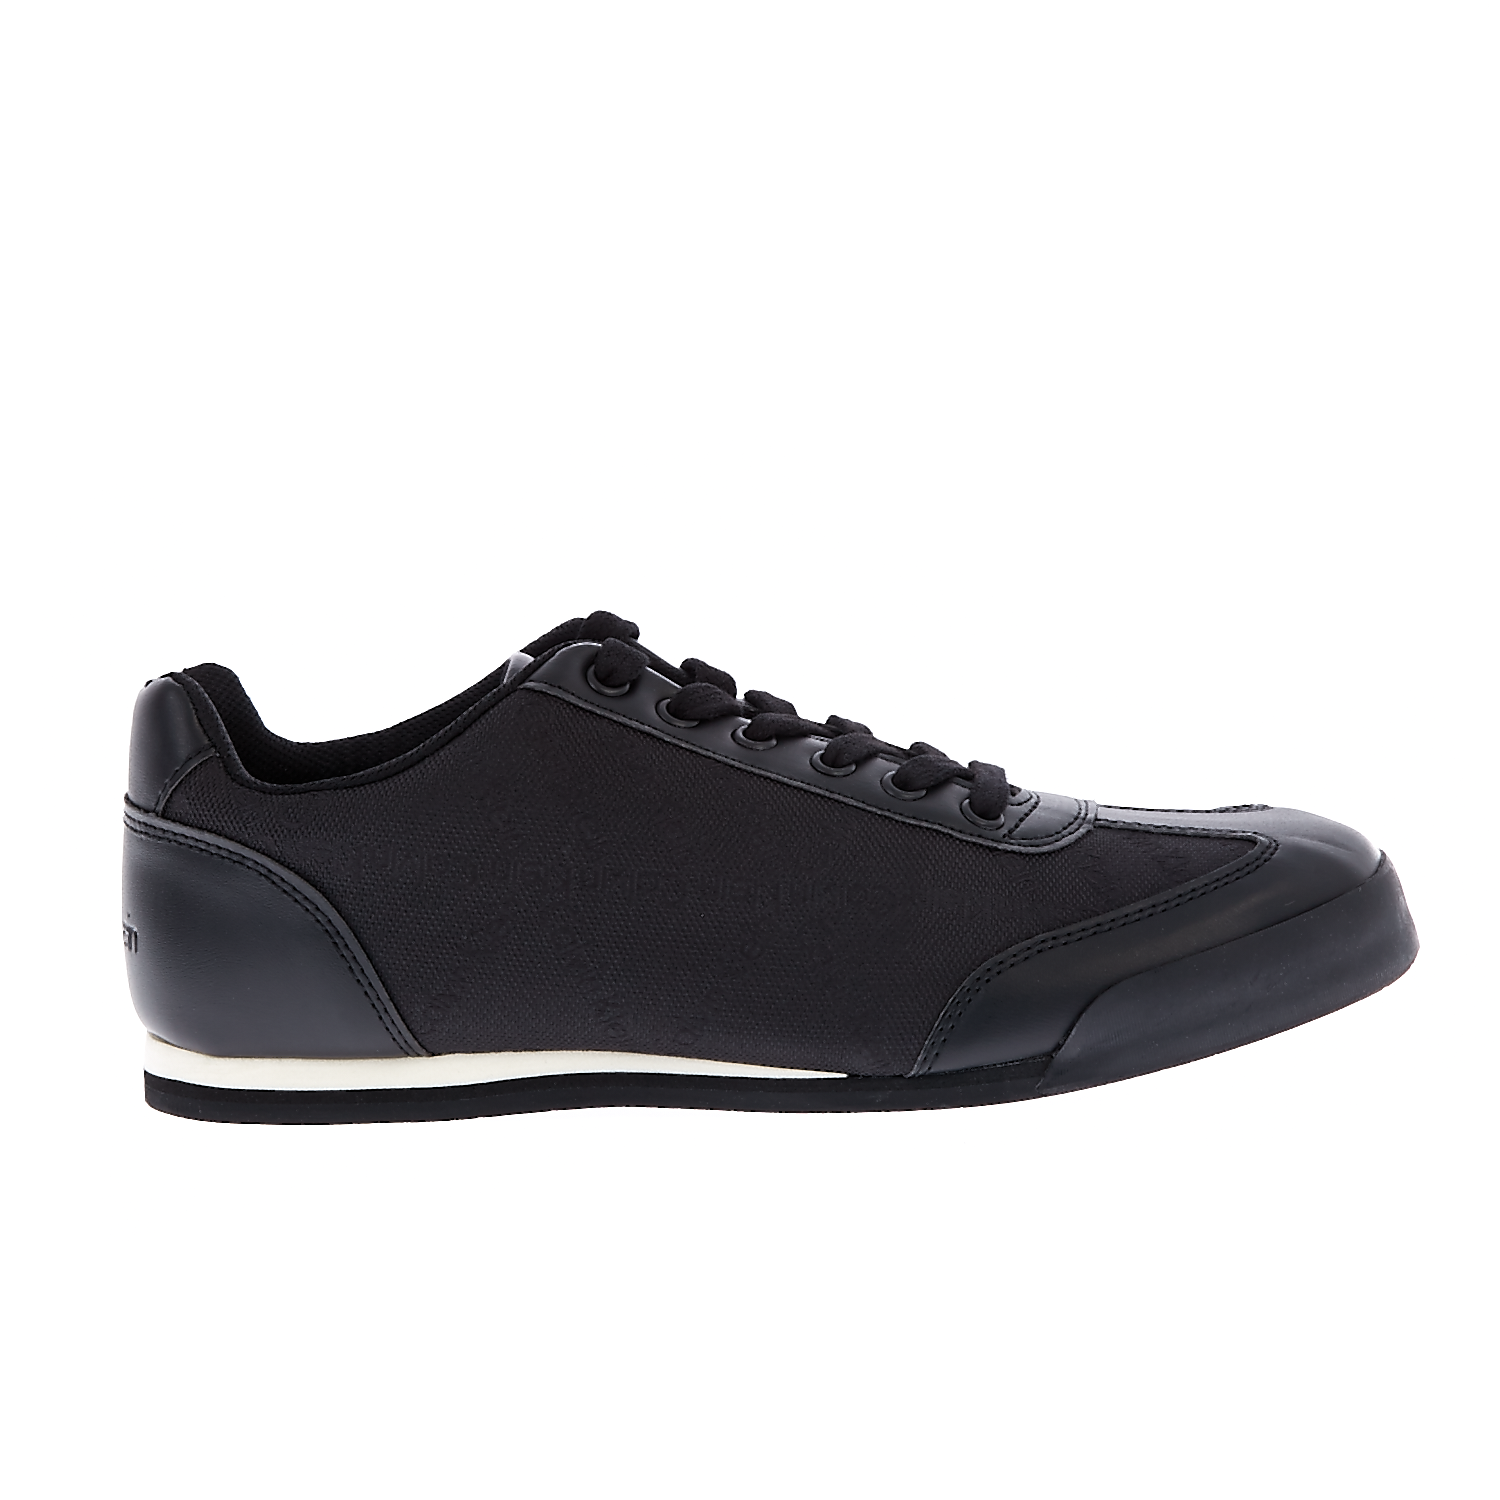 CALVIN KLEIN JEANS - Ανδρικά sneakers CALVIN KLEIN JEANS CALE μαύρα ανδρικά παπούτσια sneakers